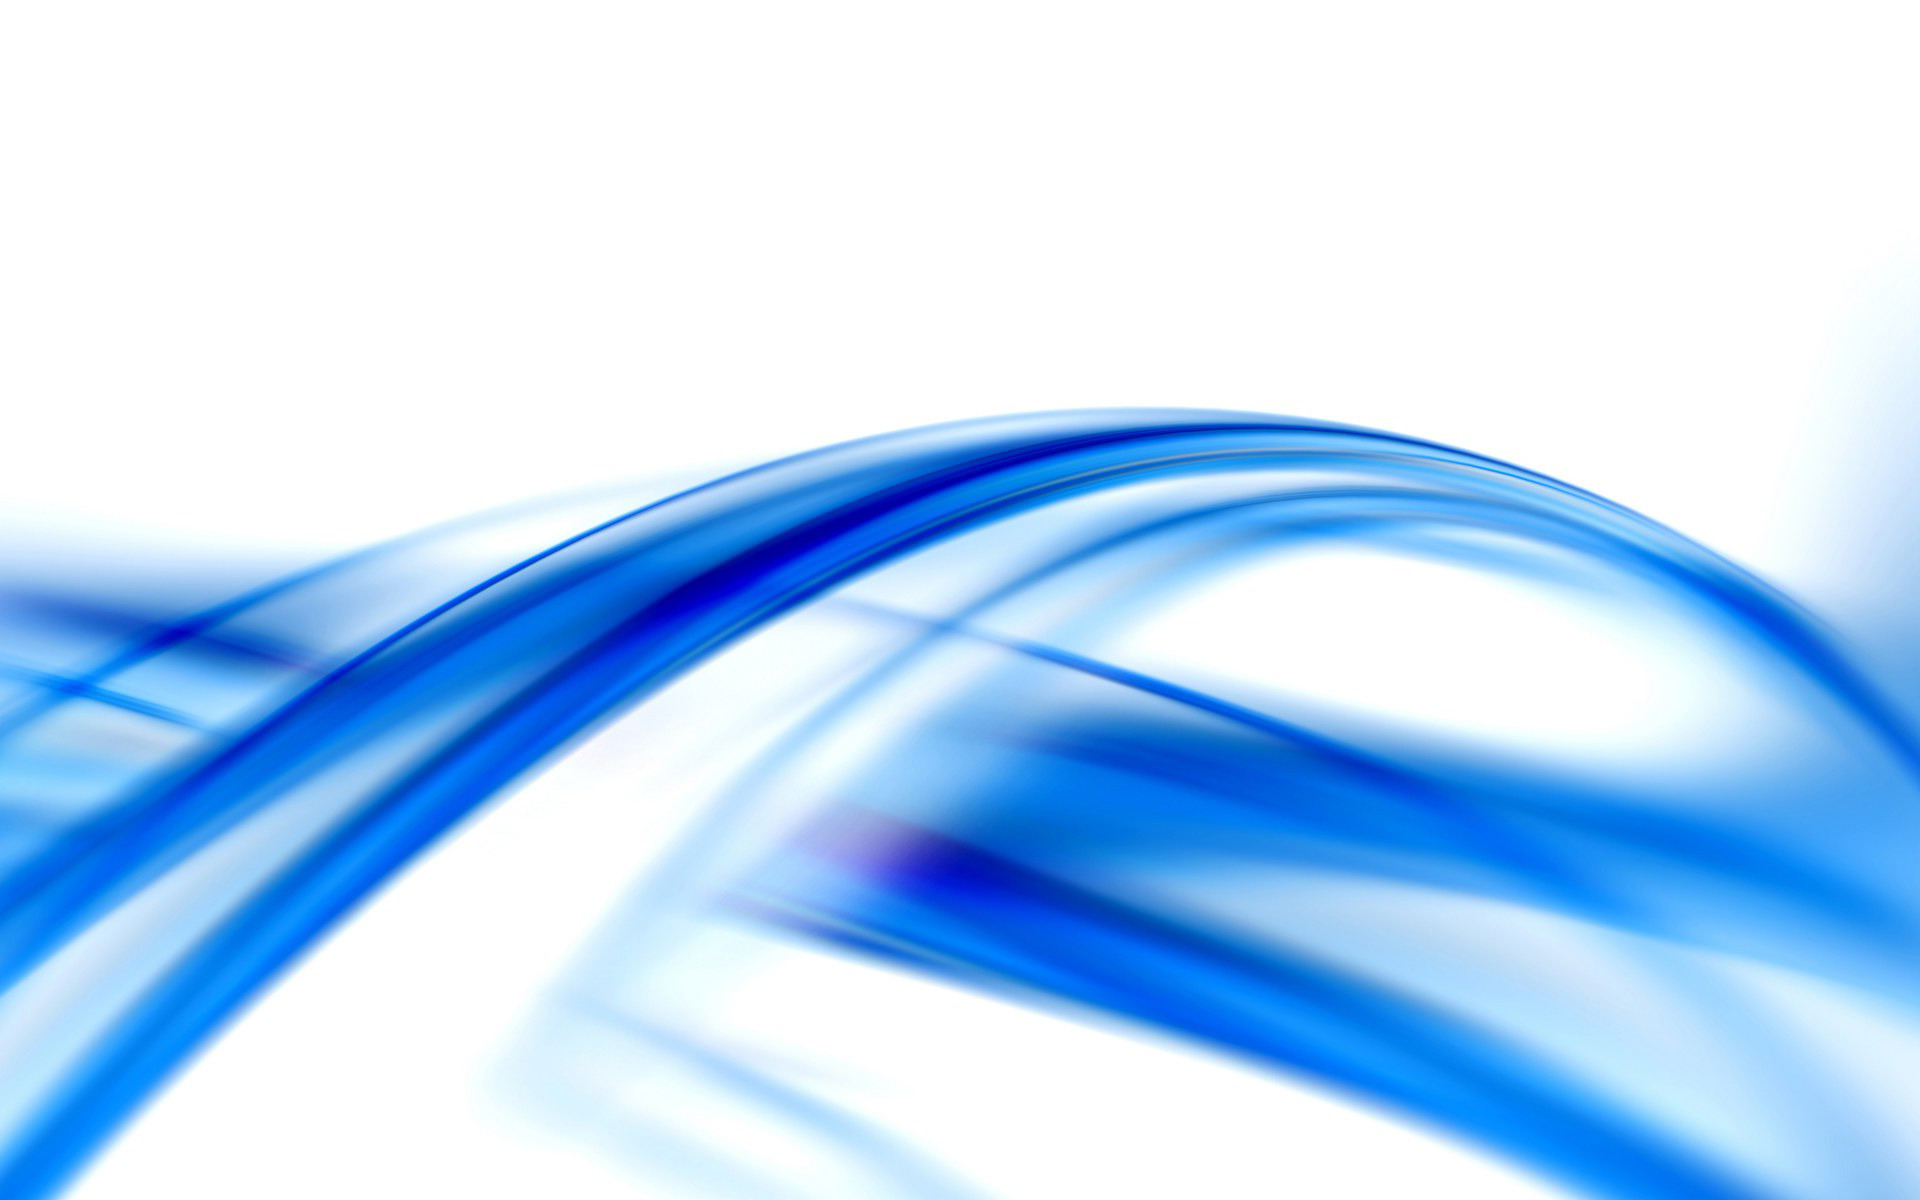 blue line wave background - photo #15